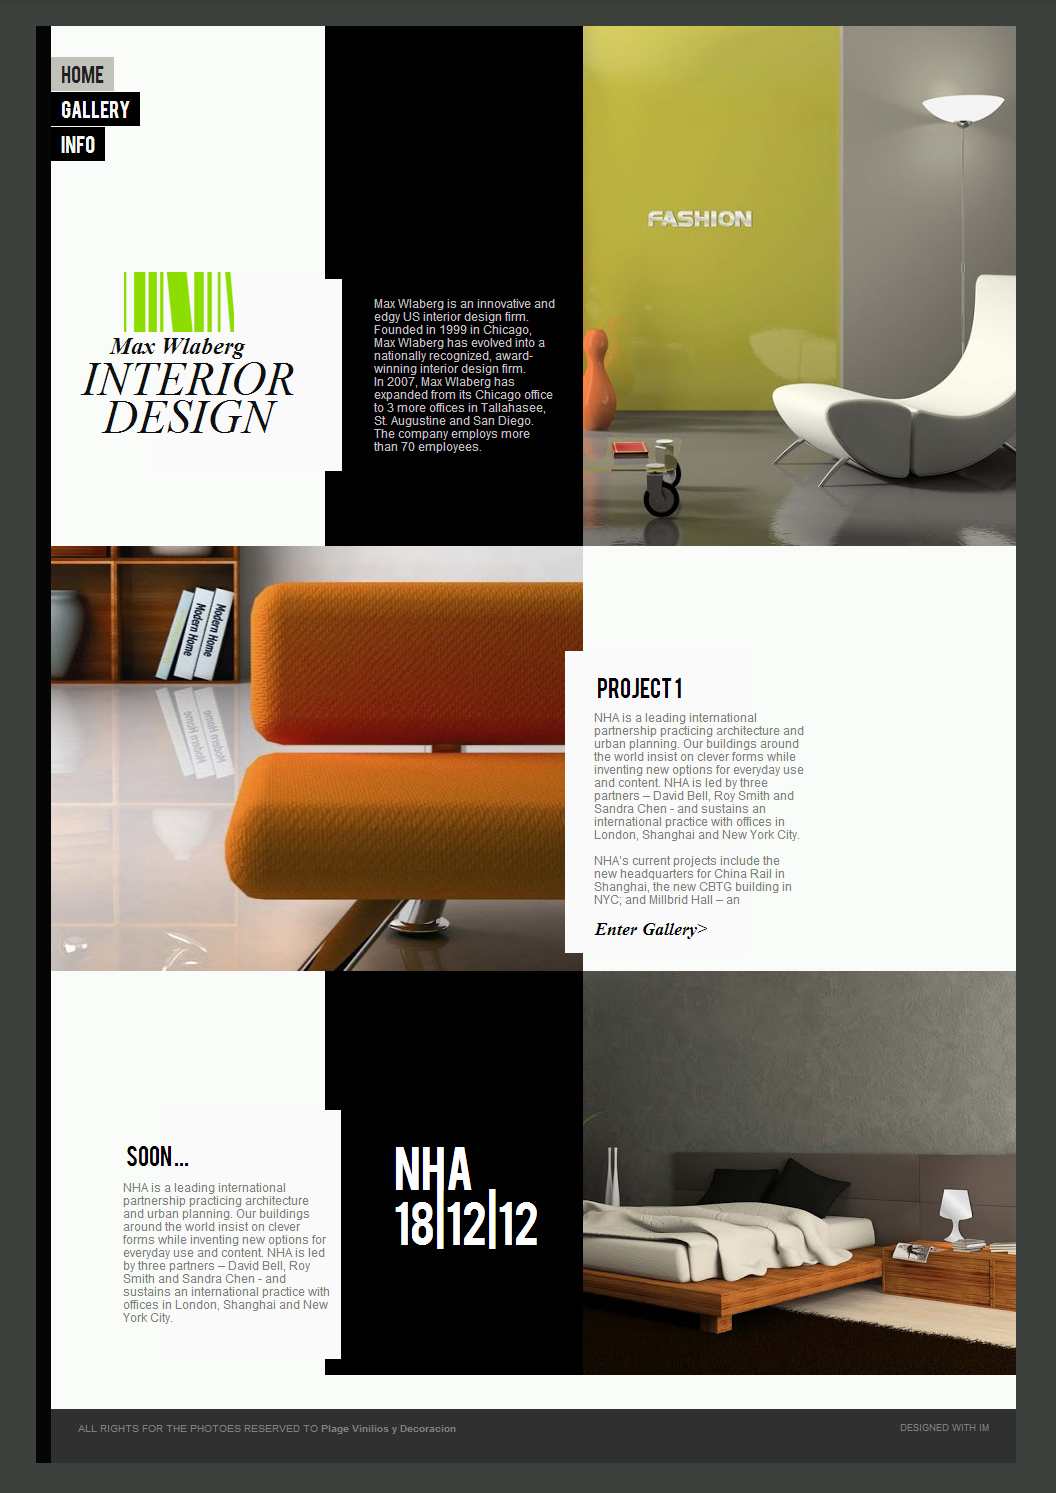 Midnightmailtrain Interiors Design Websites